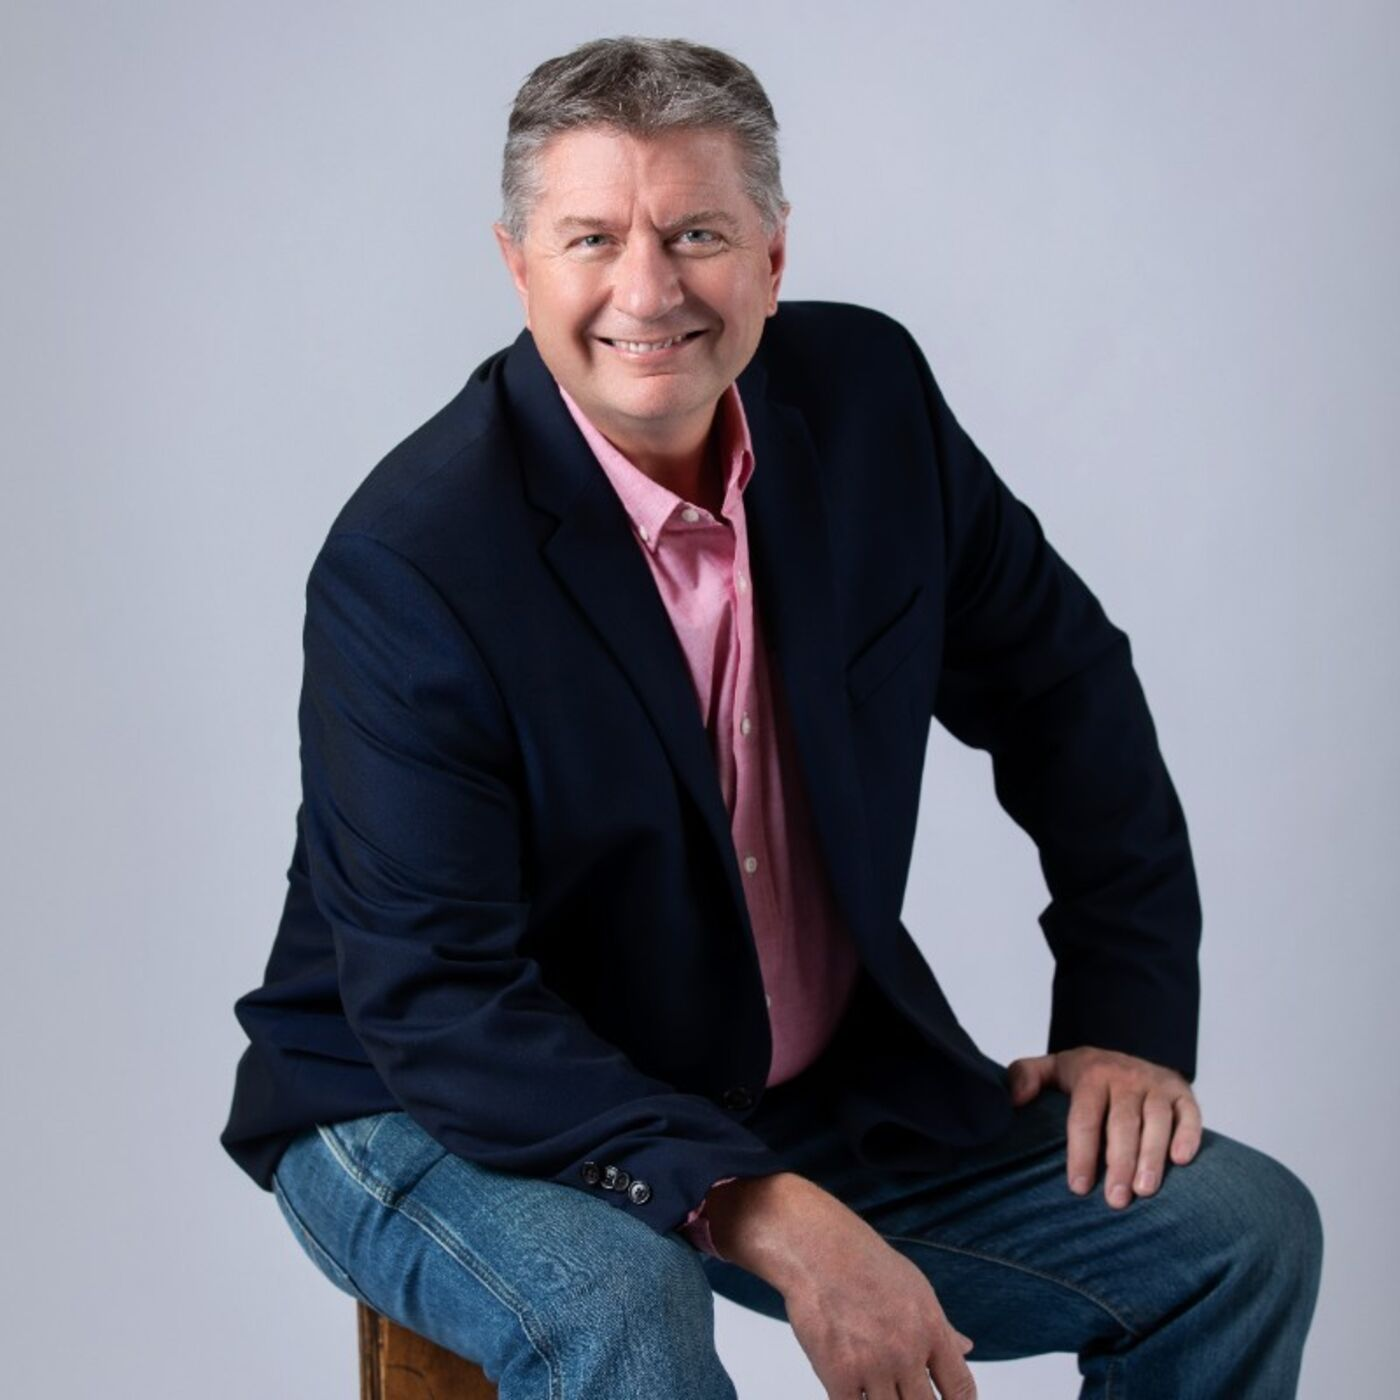 Arnold Volker is the Newest Mission Matters Business Leaders Author